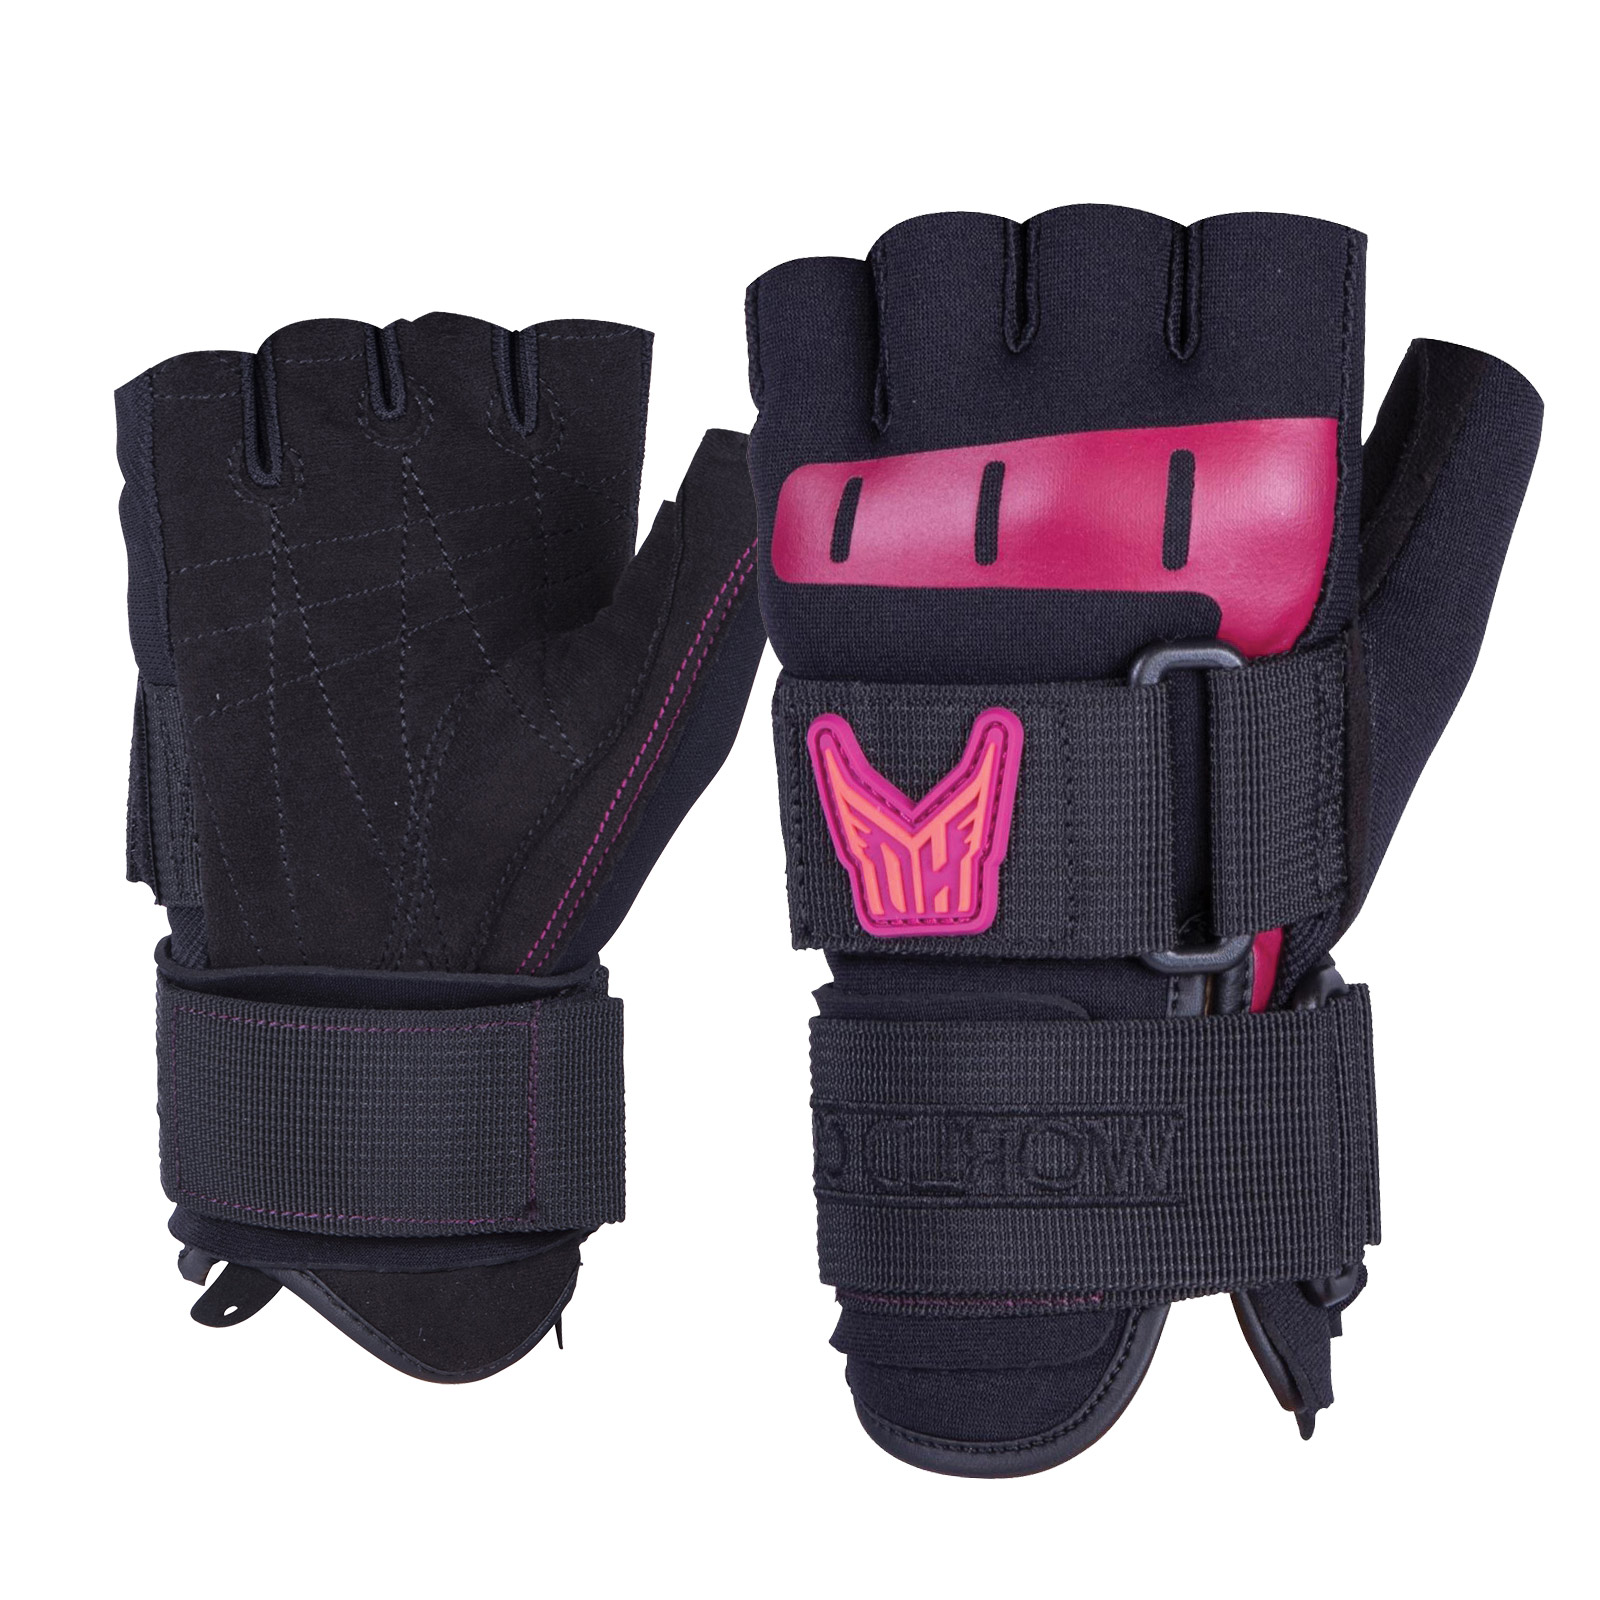 WORLD CUP 3/4 WOMEN'S GLOVE HO SPORTS 2018